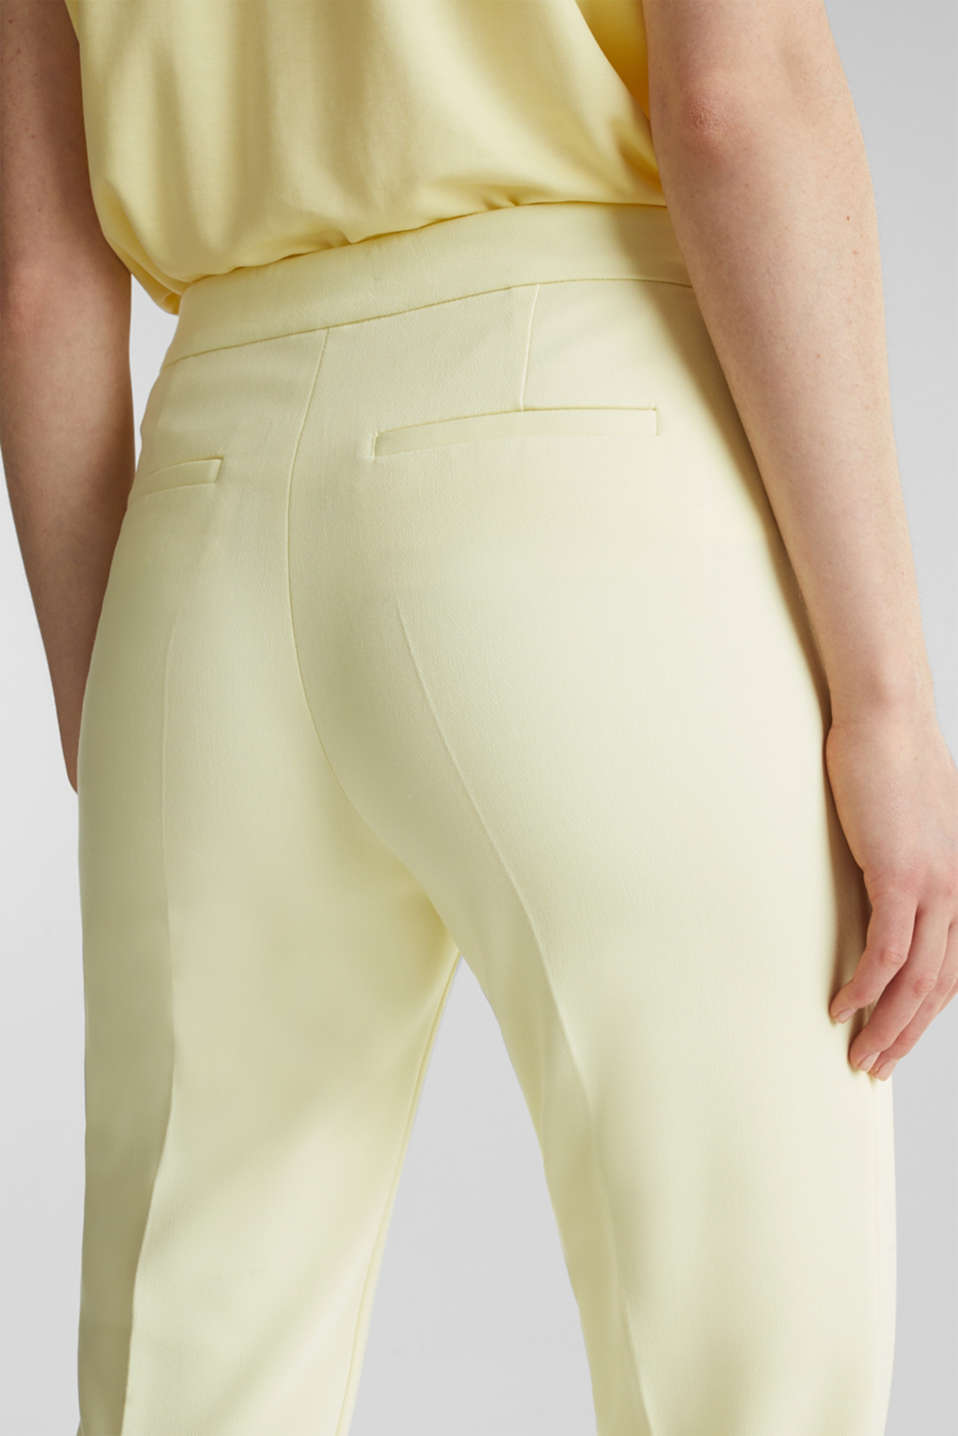 JERSEY mix + match trousers, LIME YELLOW, detail image number 5